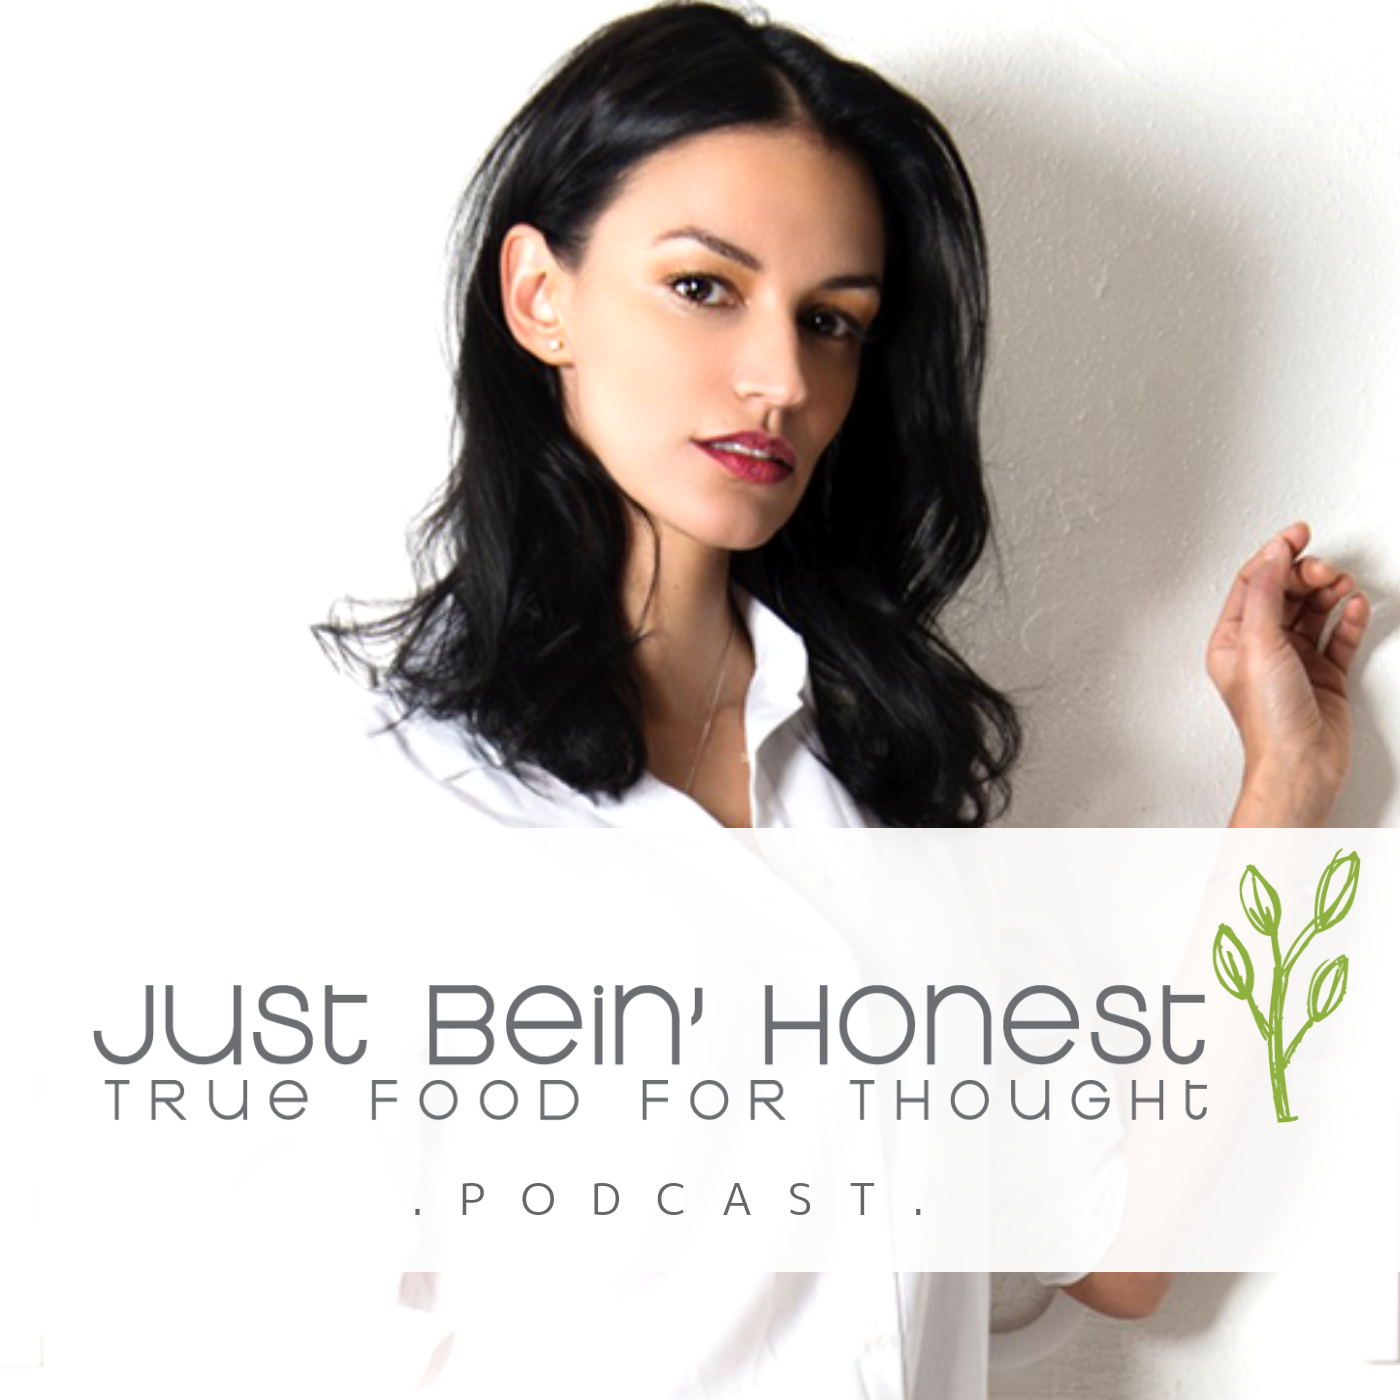 MEGHAN ASHA Ep 40 _ Just Bein' Honest - PODCAST